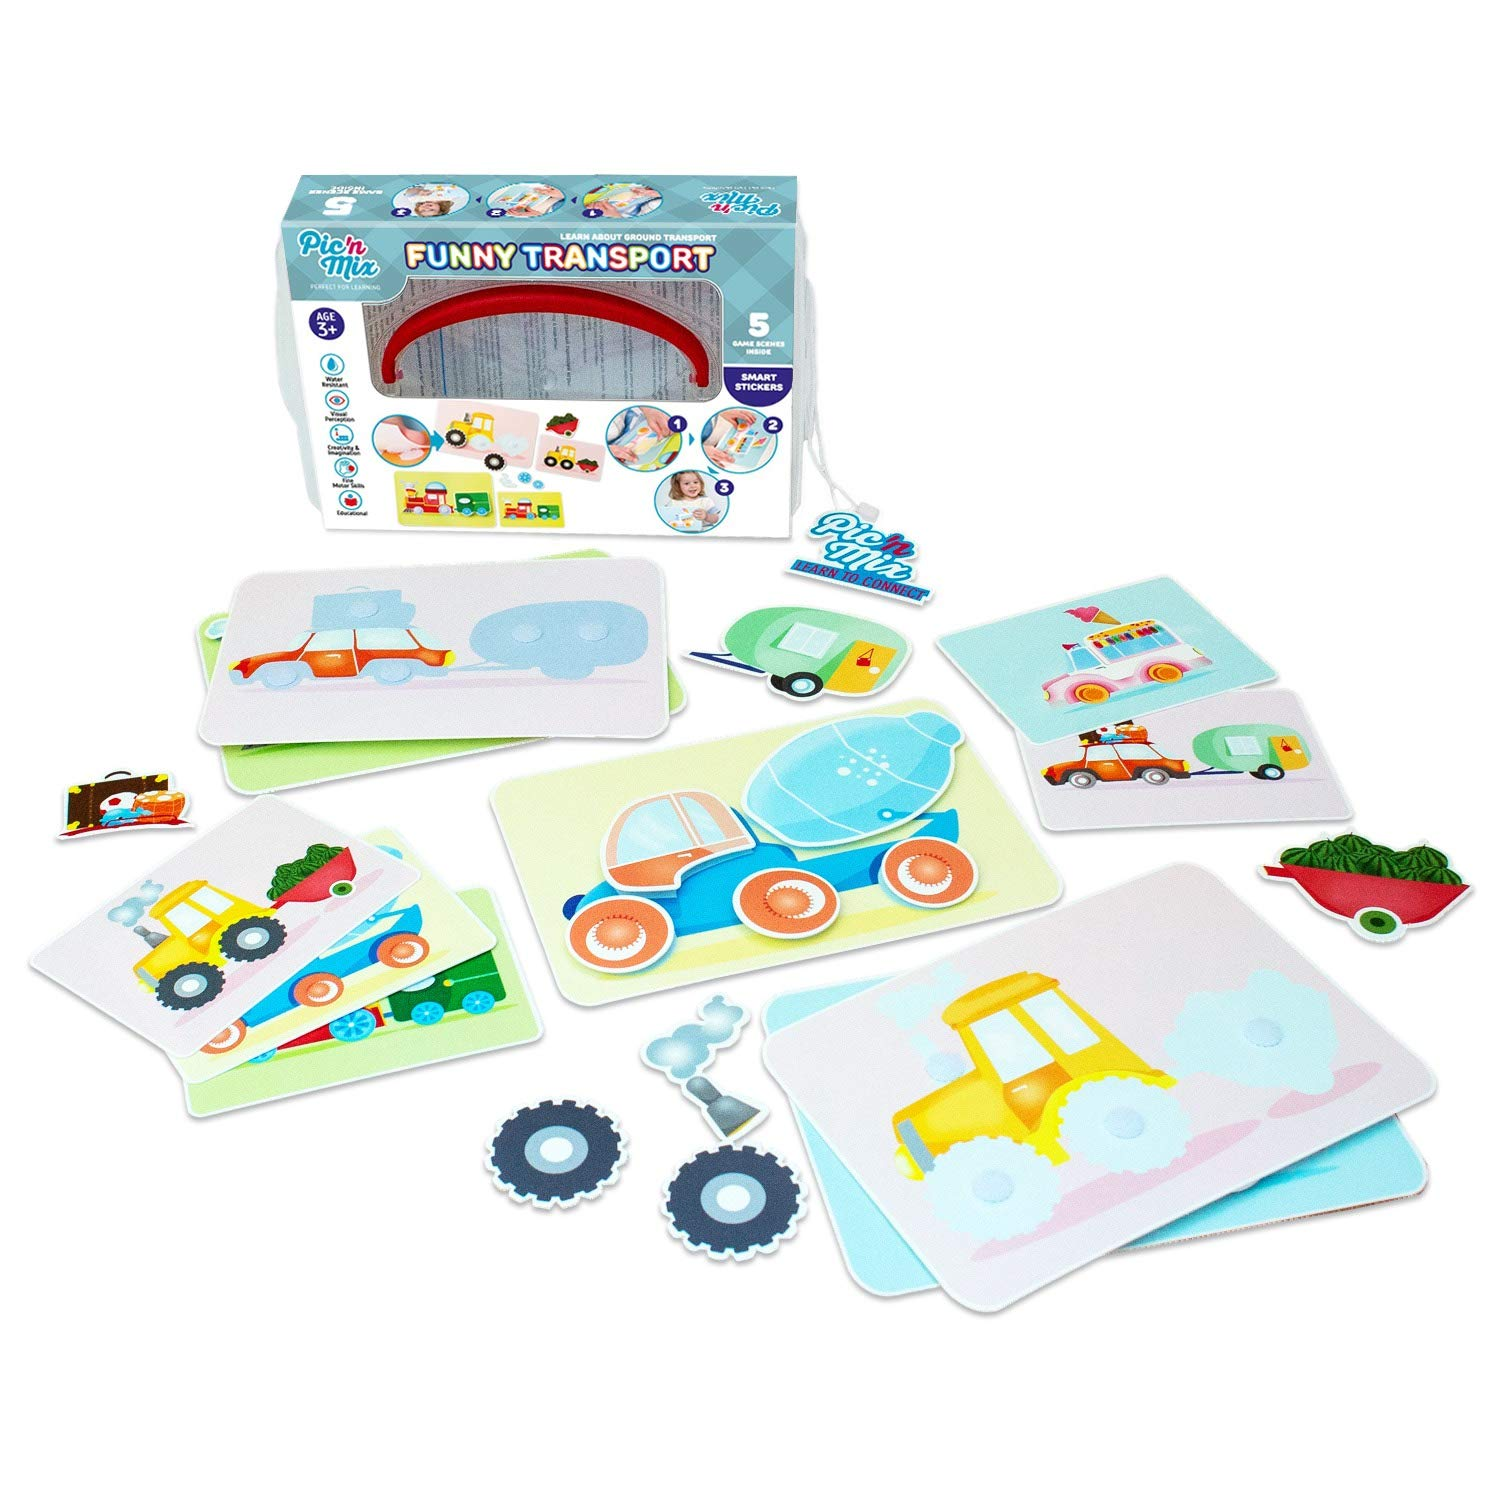 Funny Transport Puzzles for Kids   Picnmix Matching Game for Toddlers 2 Years and Up. Educational Board Game   Preschool Learning Toy. Fine Motor Skills Toy for Boys and Girls